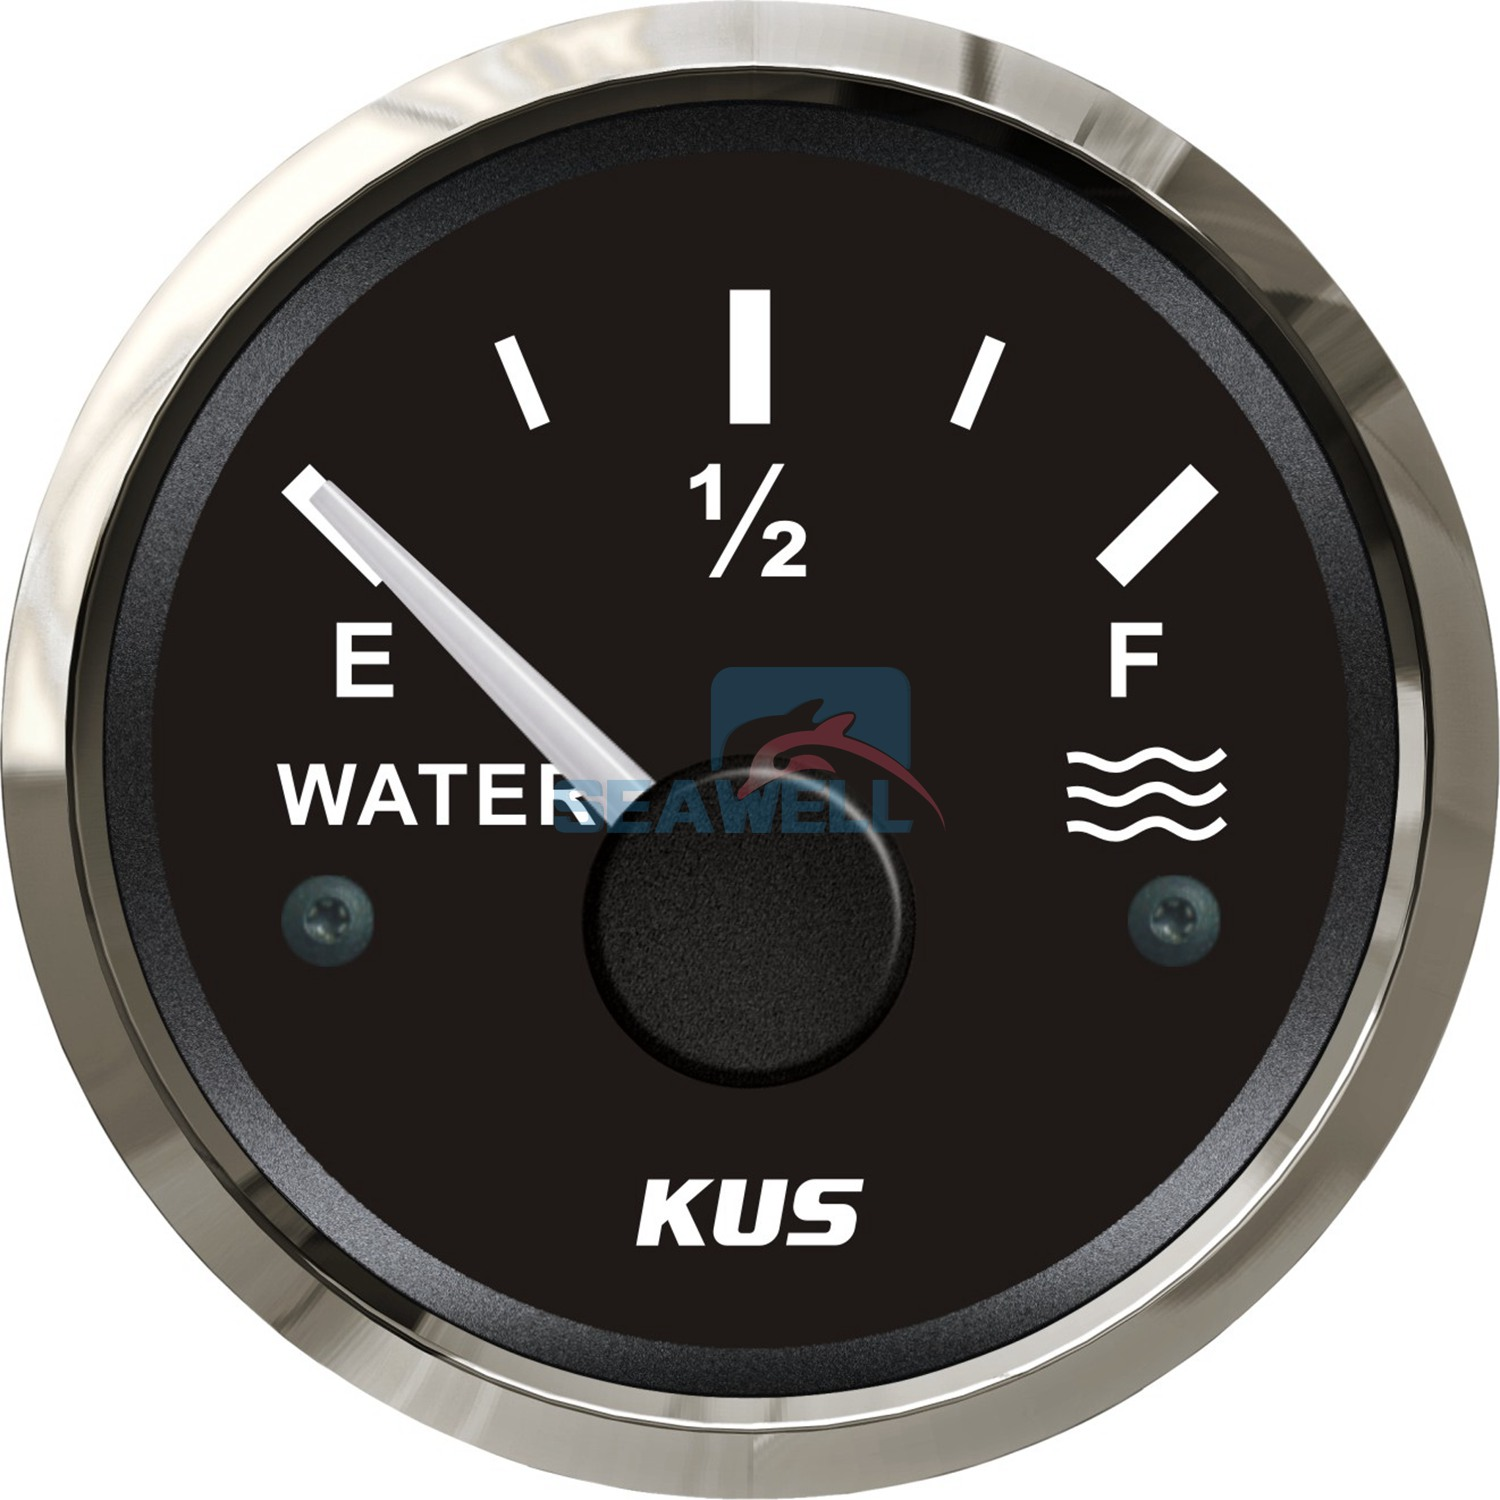 Yamaha Lcd Marine Gauge Wiring Diagram Will Be A Fuel For F150 Kus Boat 21 Images Outboard Teleflex Gauges Diagrams